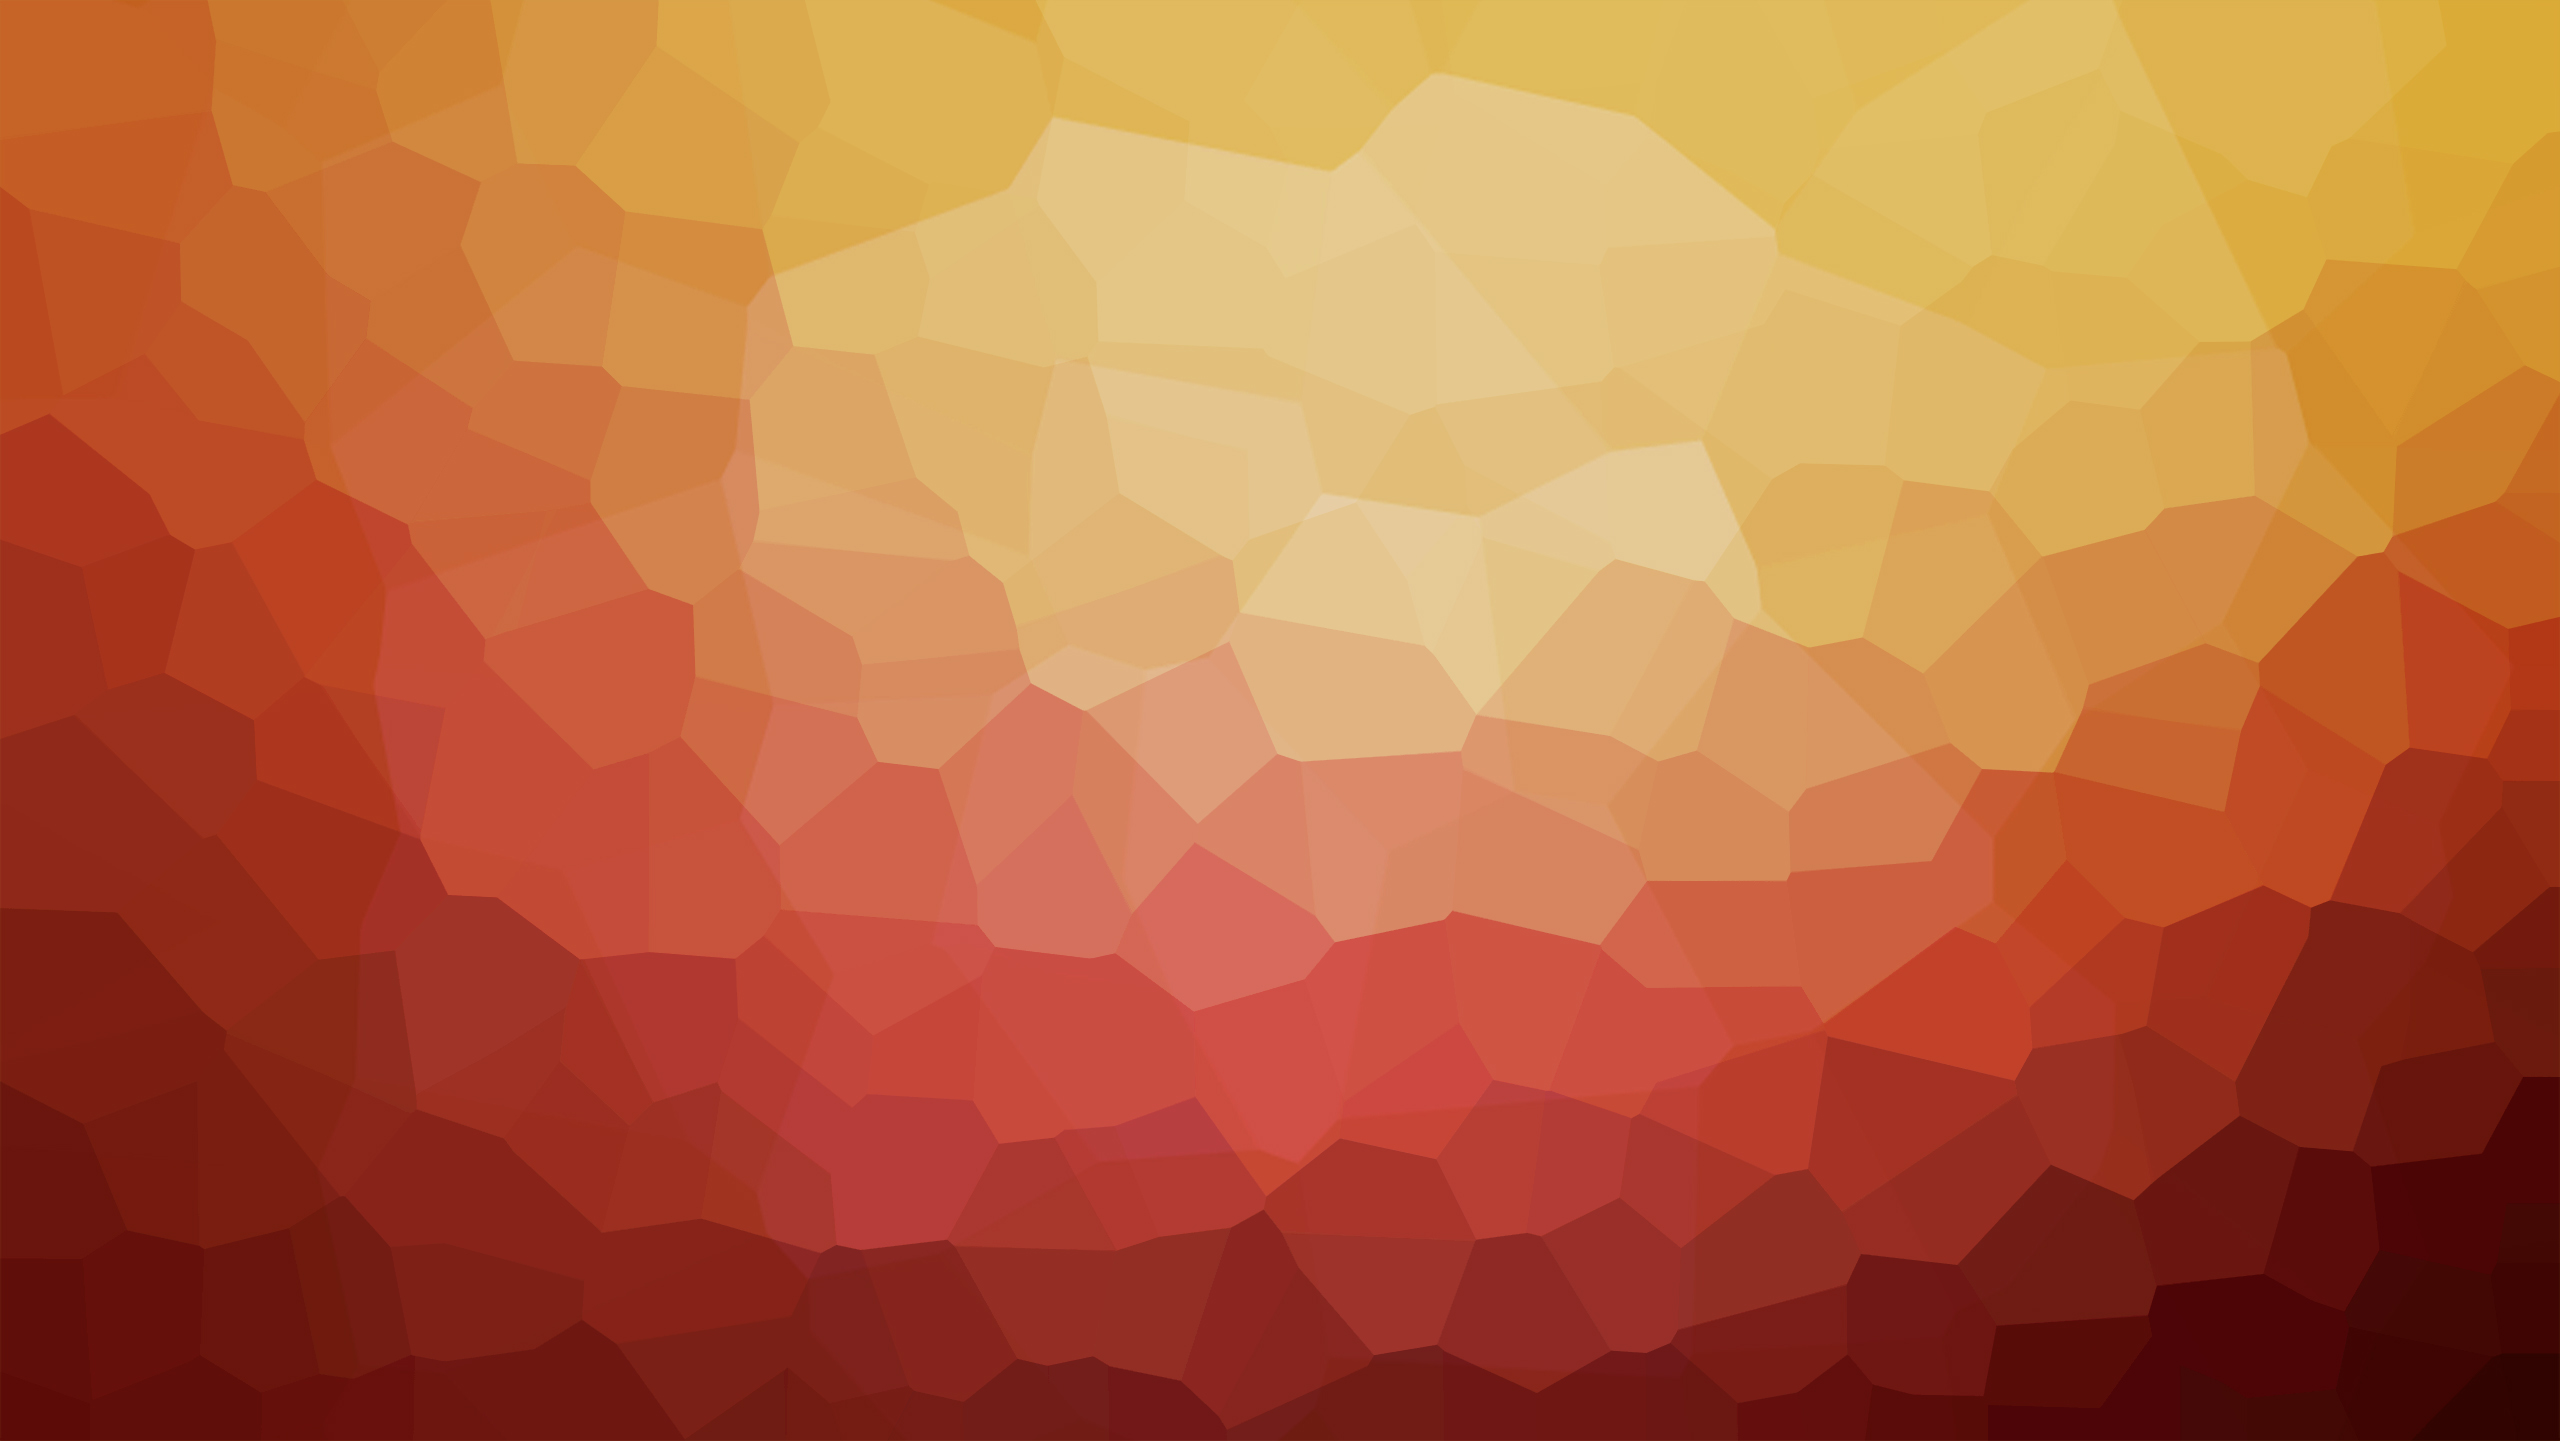 Carbon, colors, angles, red, orange, yellow, triangles, abstract